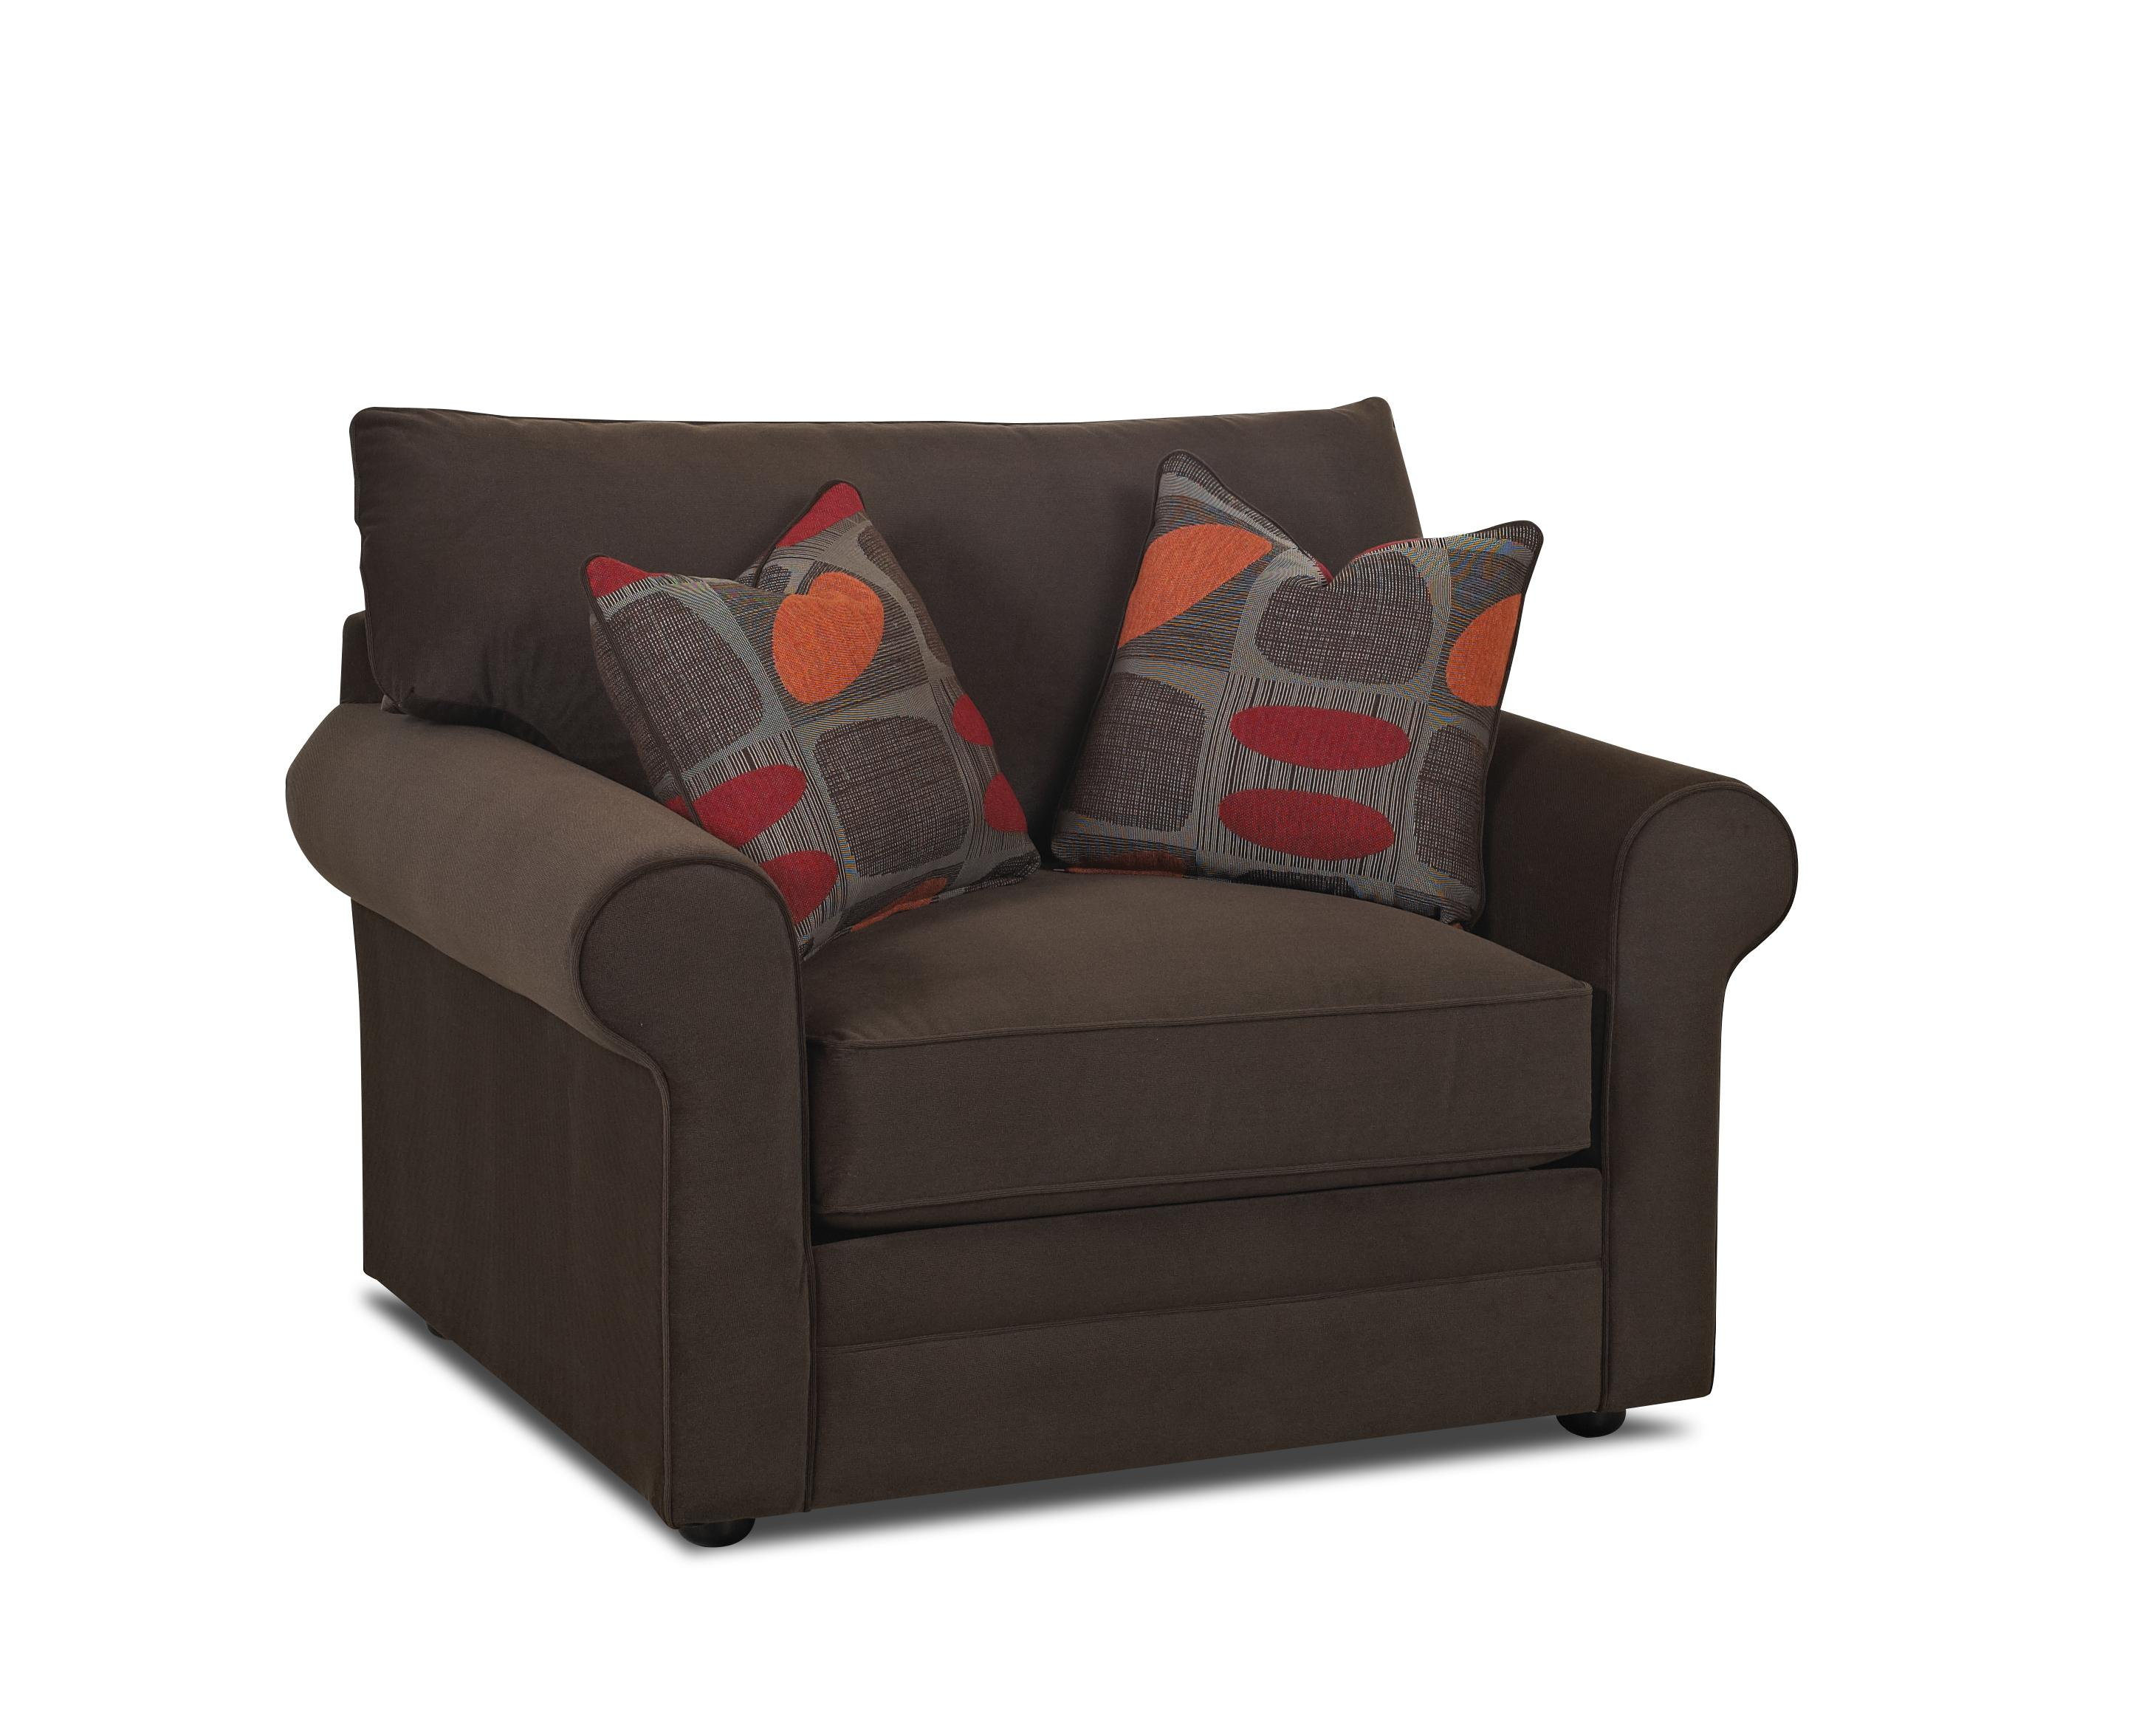 Comfy Big Chair by Klaussner at Northeast Factory Direct